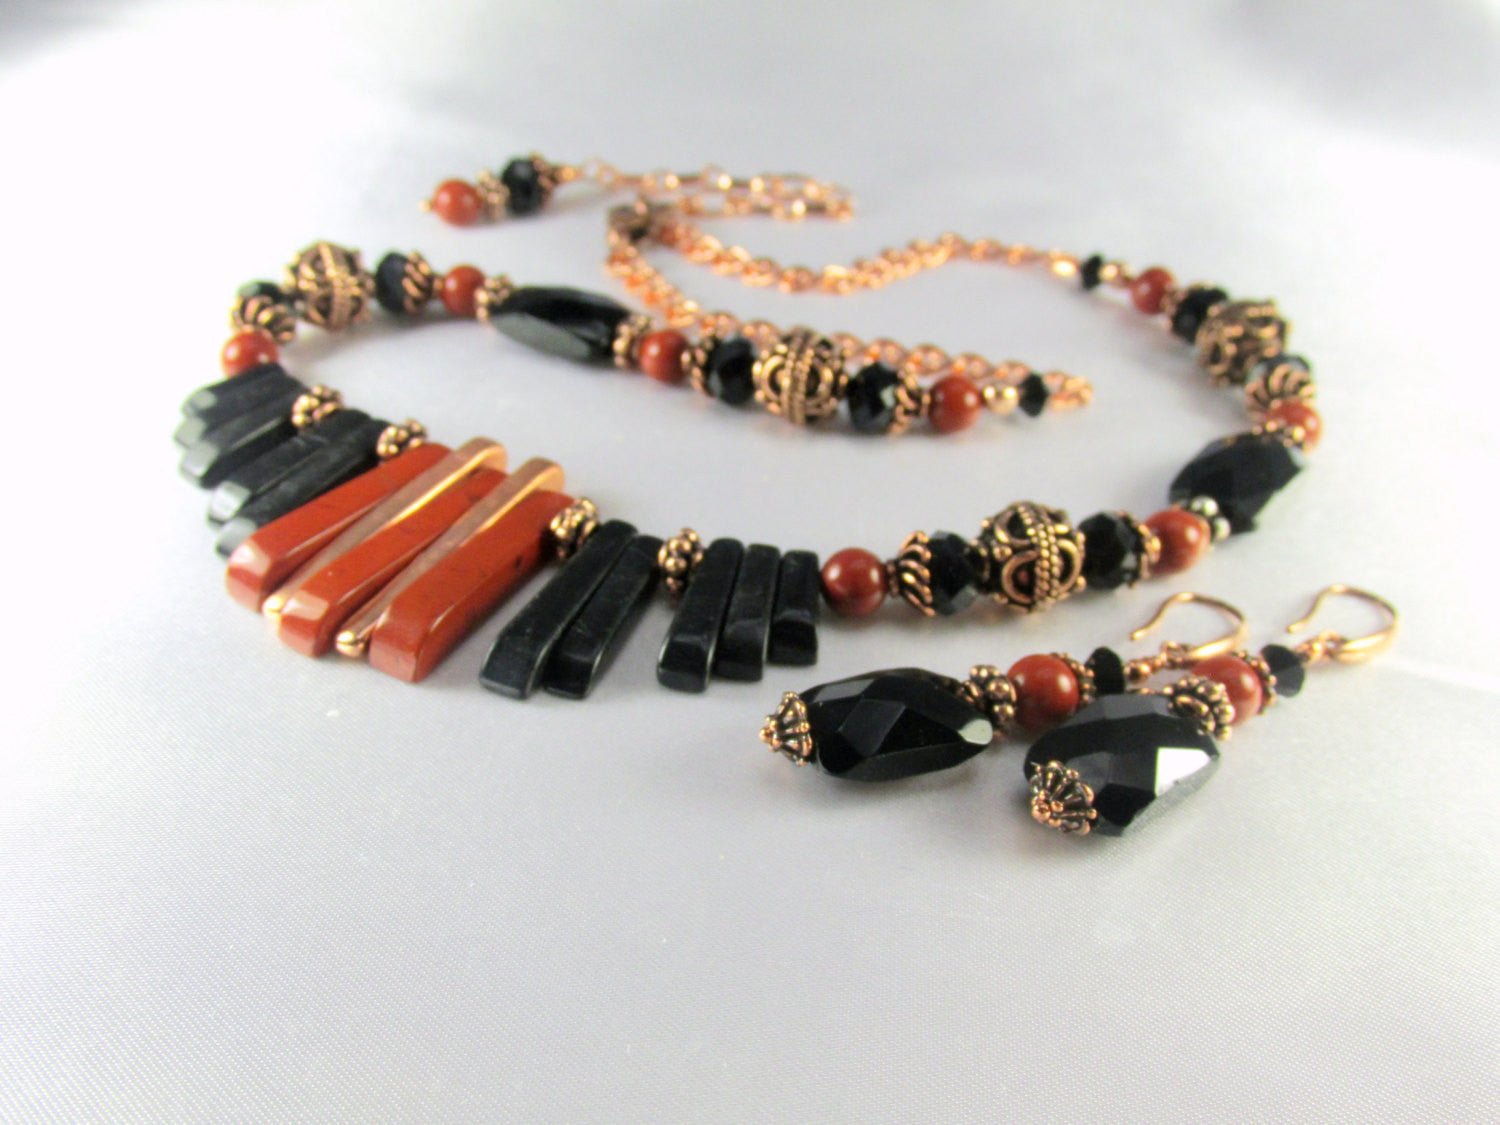 Statement Necklace and Earring Set Red Jasper, Blackstone Semiprecious Stone with Bali Copper Cleopatra Style - Odyssey Creations